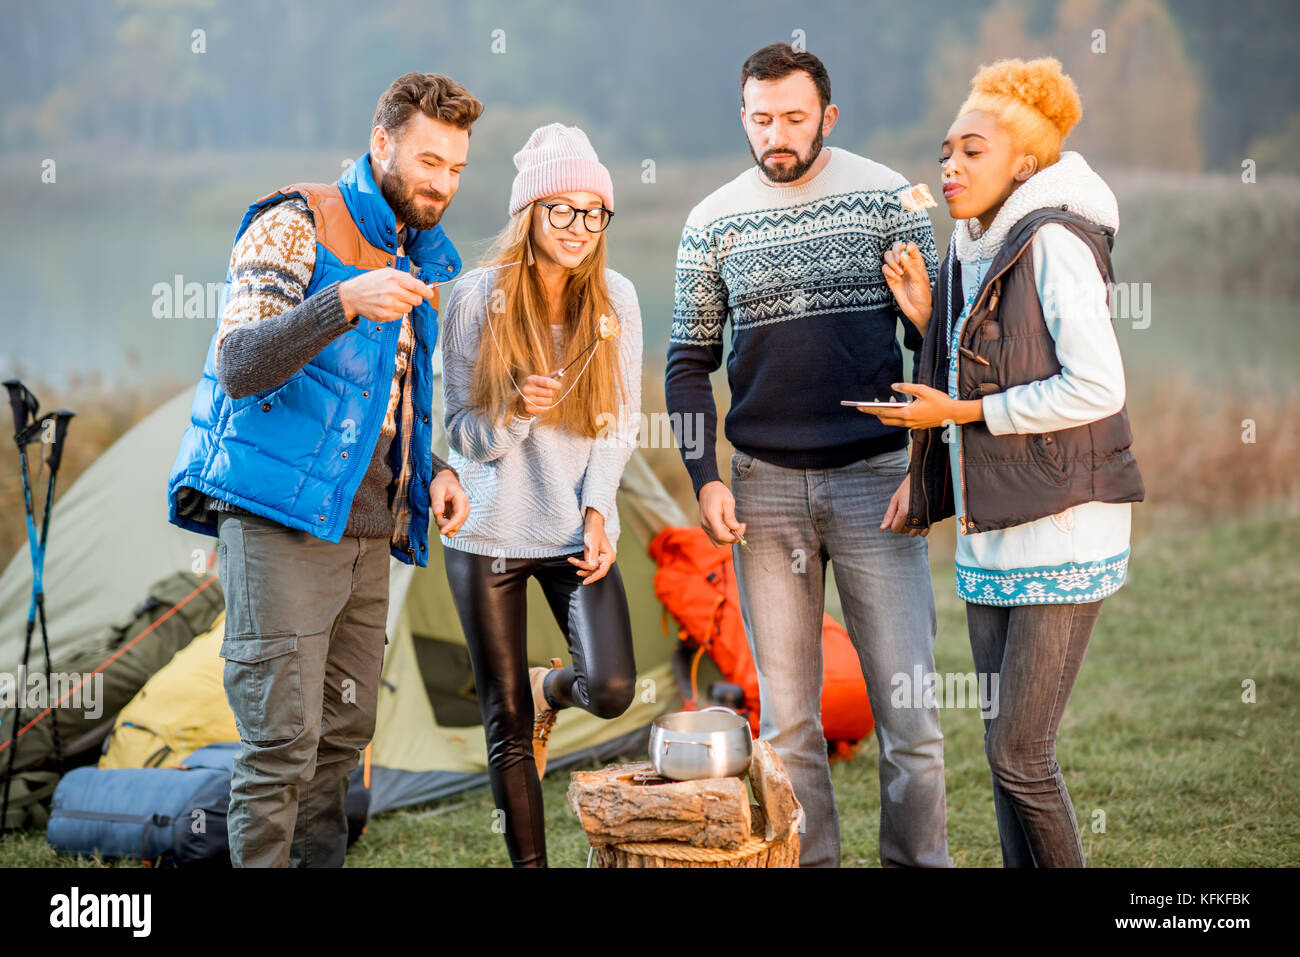 Friends in sweaters eating fondue outdoors - Stock Image